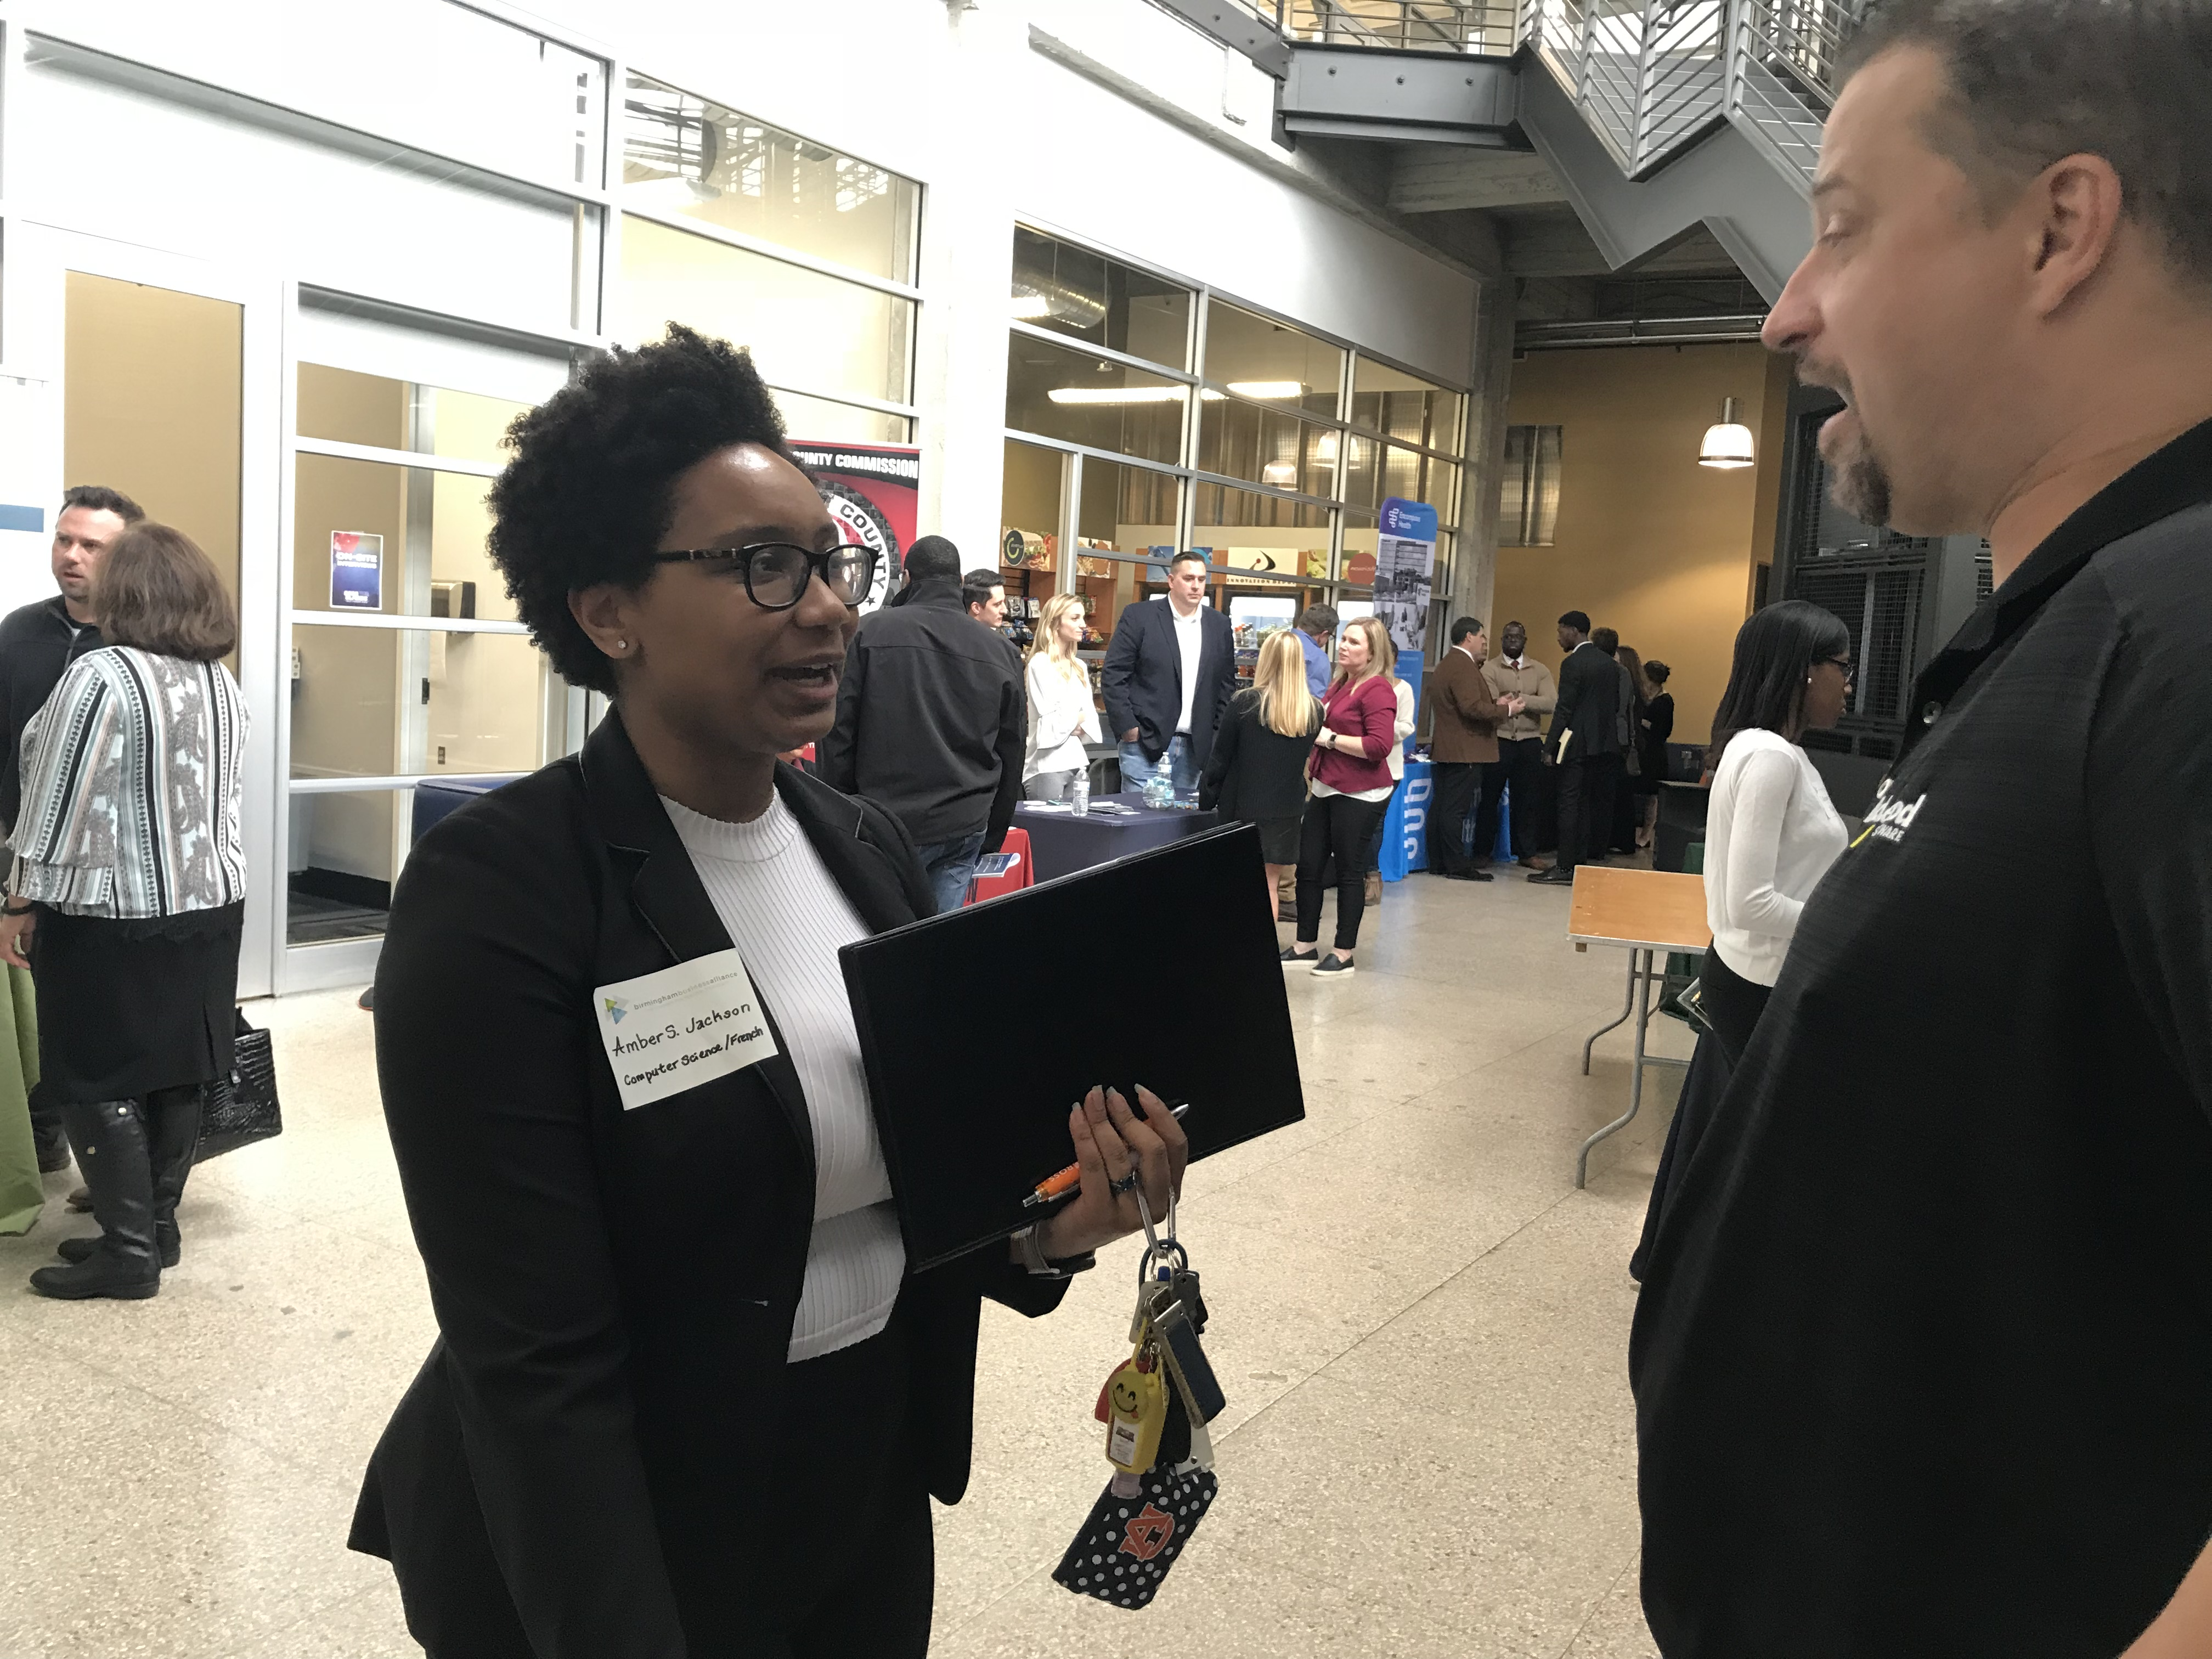 Hbcu Students Network With Area Businesses During Classic